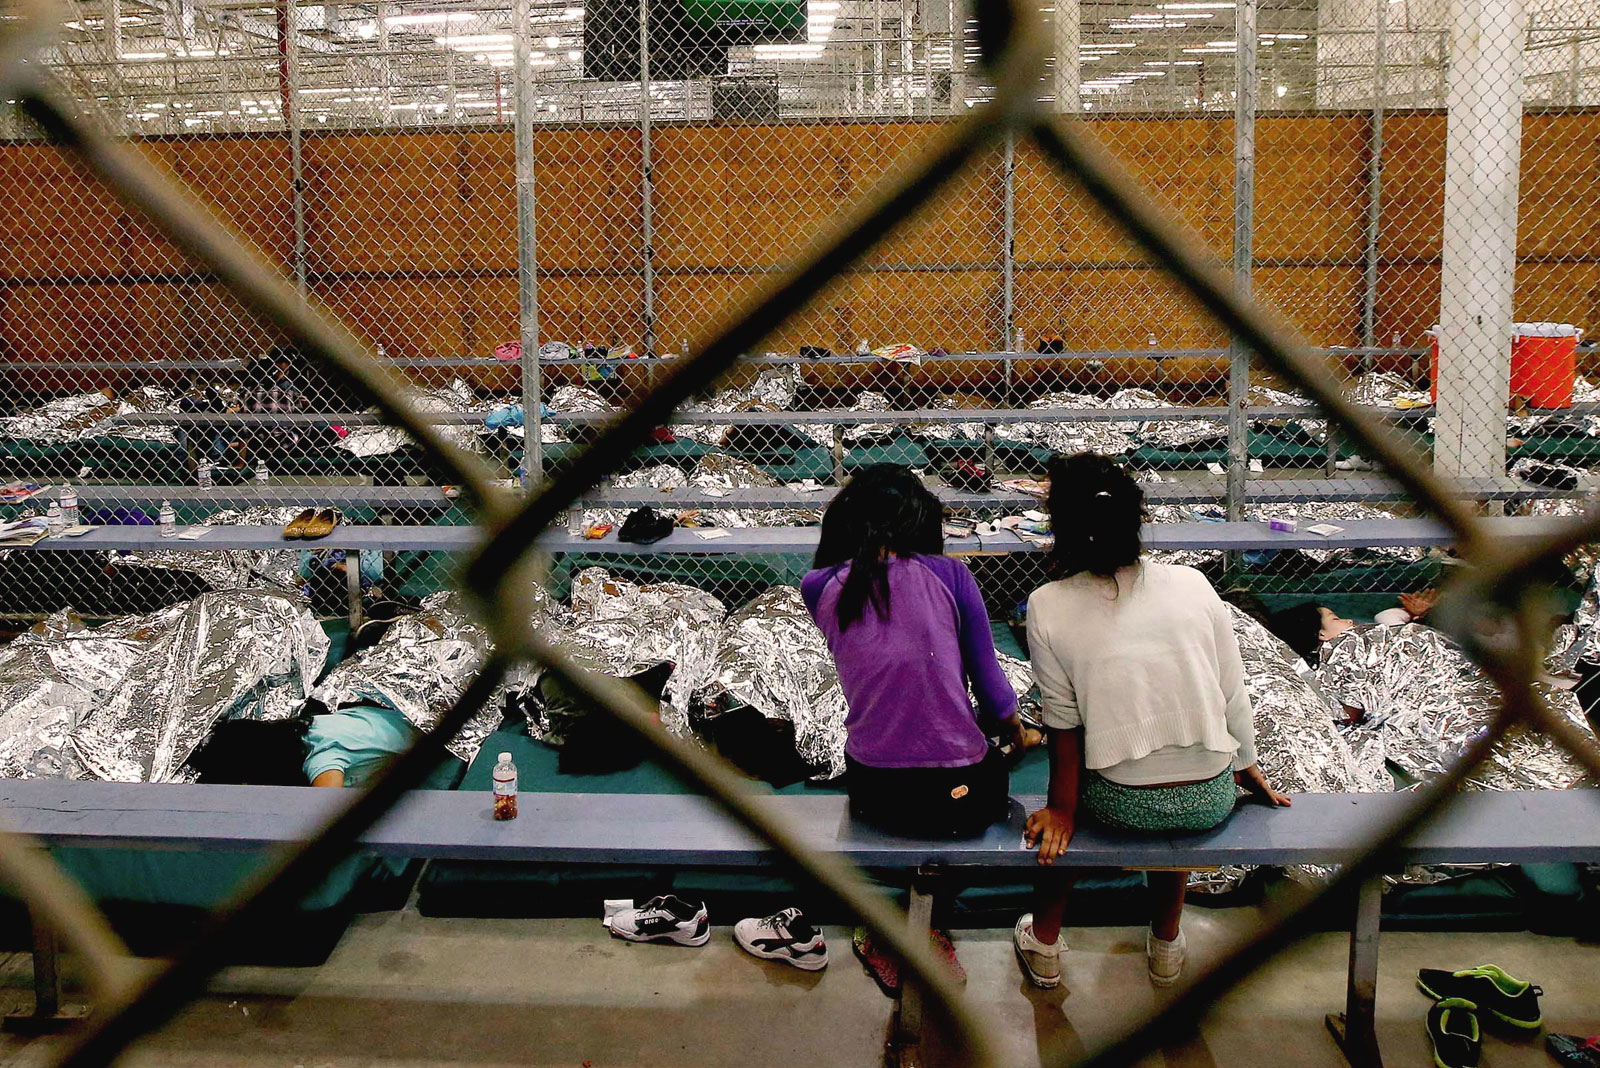 Two young girls held at a U.S. Customs and Border Protection Nogales Placement Center in Nogales, Ariz. Ross D. Franklin—AP Images